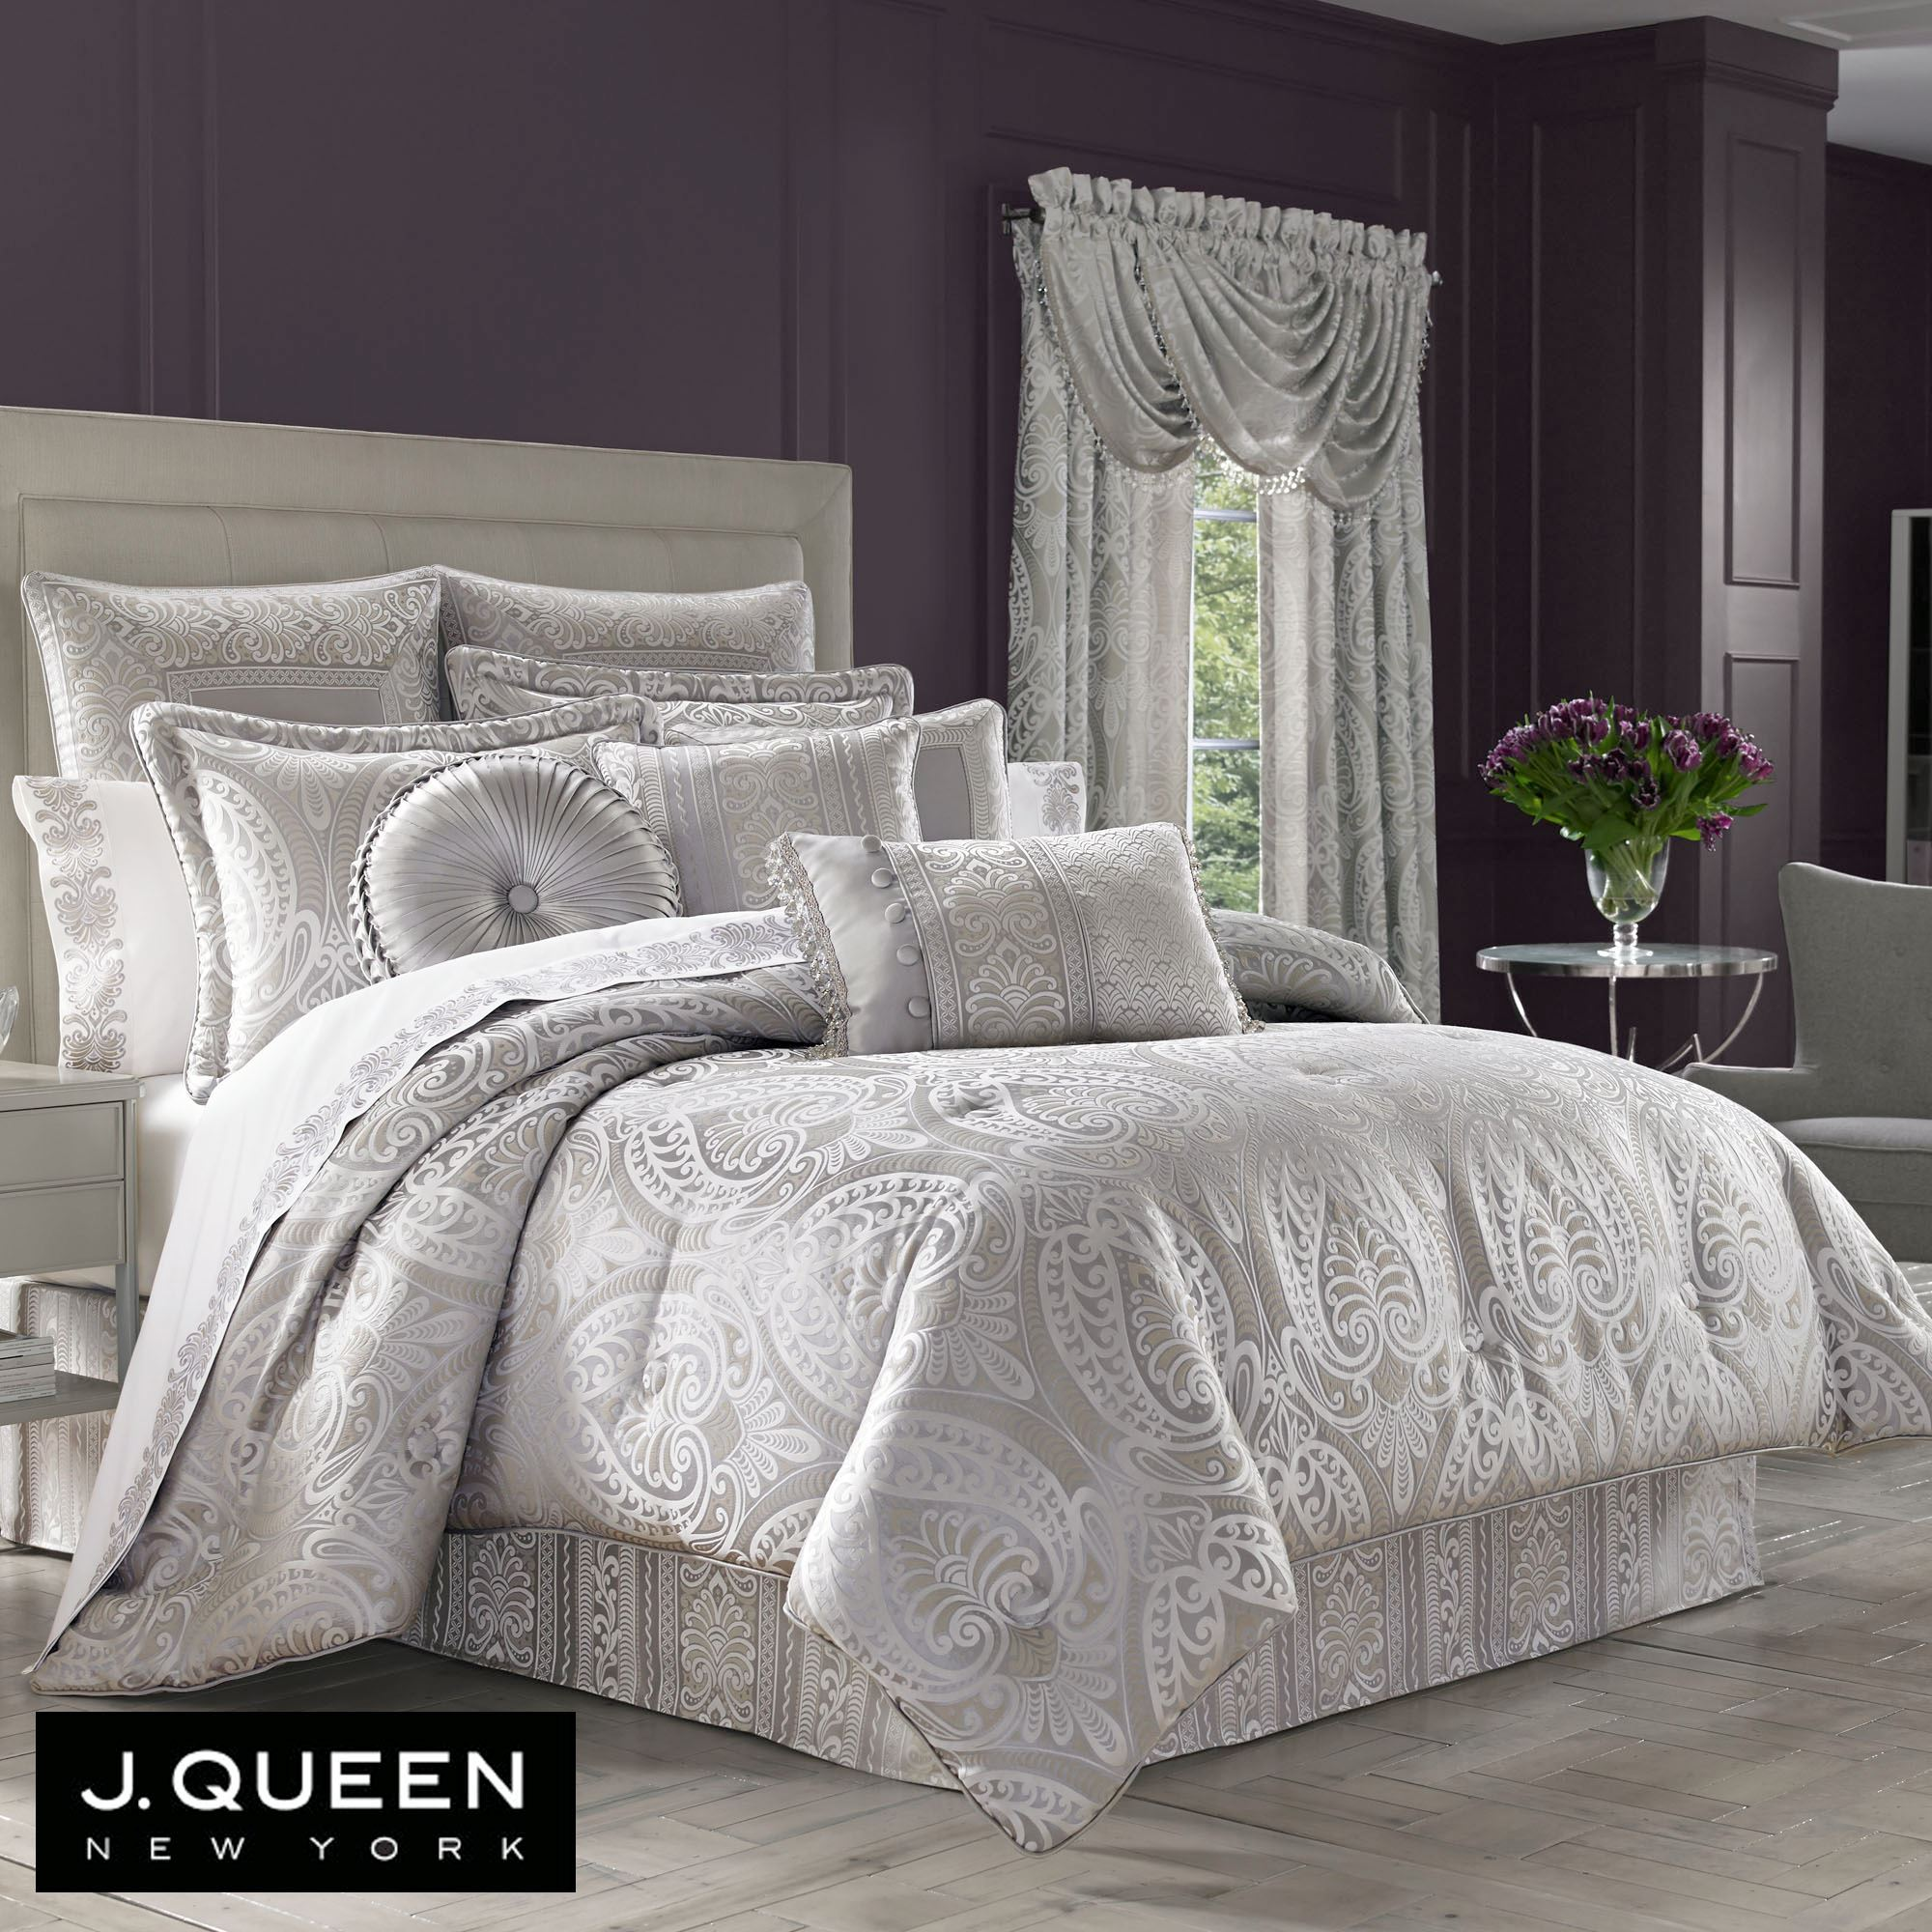 Le blanc silver comforter bedding by j queen new york - Bedroom sheets and comforter sets ...